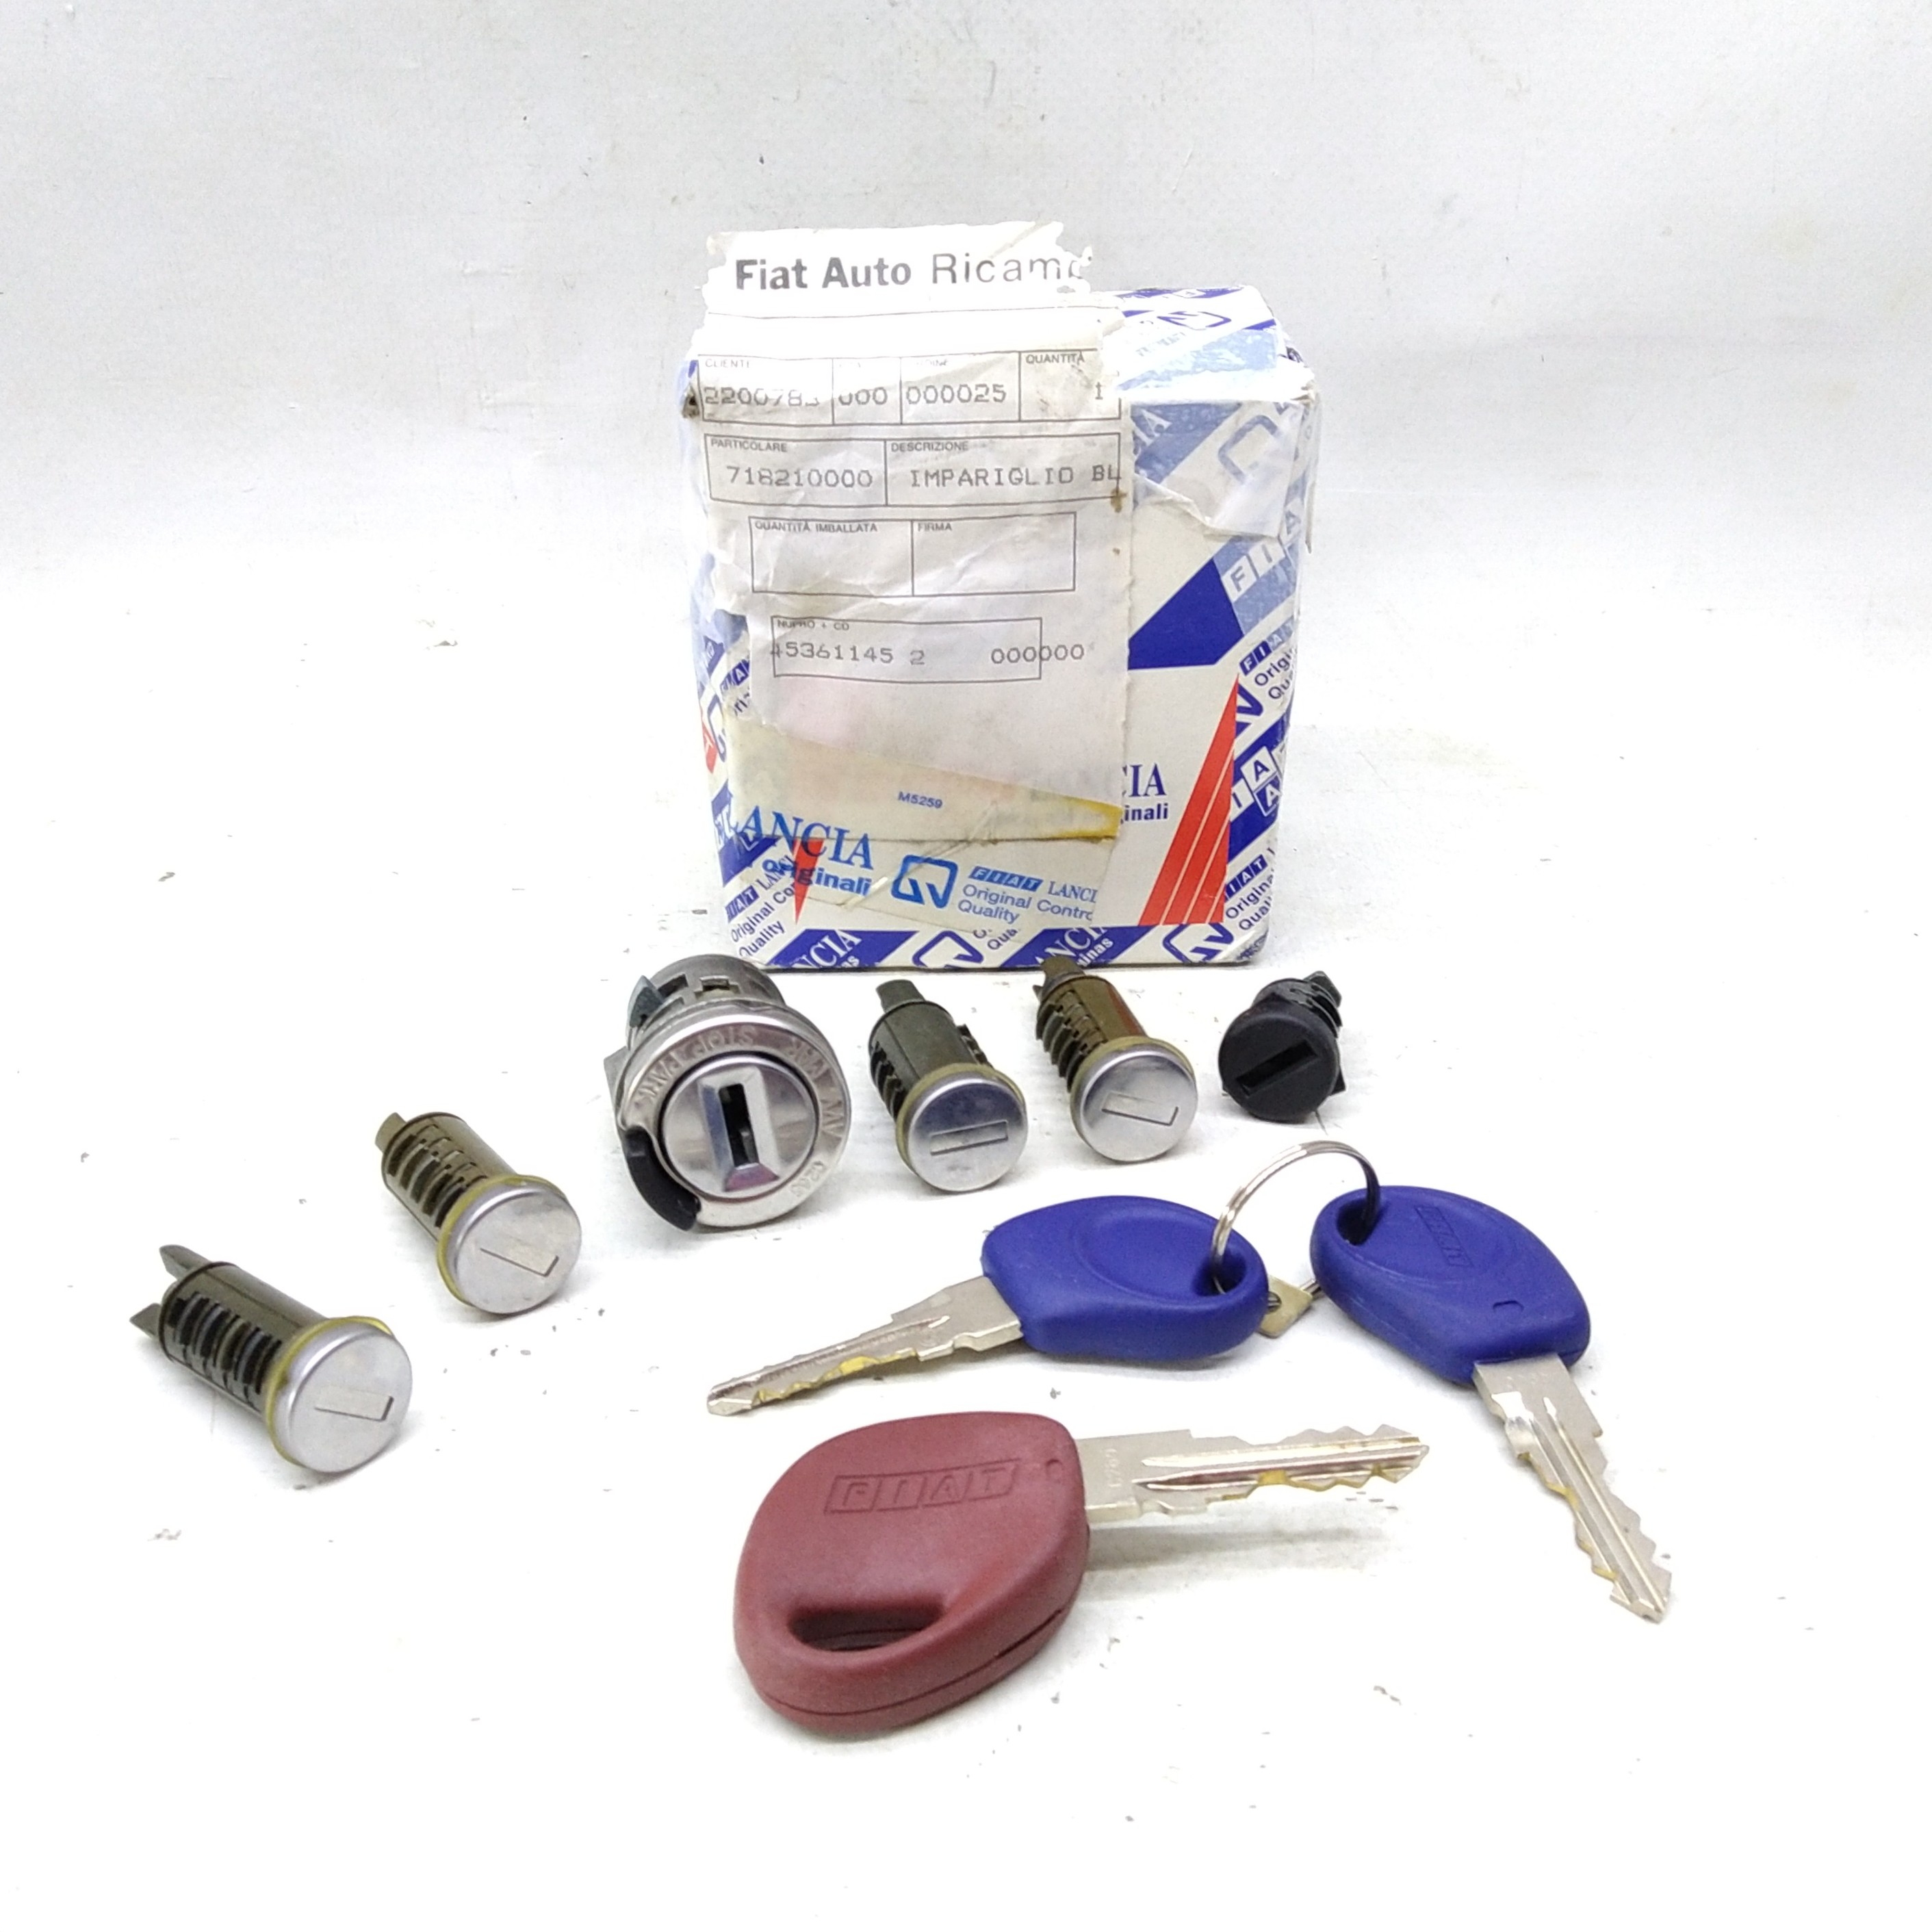 KIT IMPARIGLIO COMPLETO SERRATURE FIAT CINQUECENTO ORIGINALE 718210000